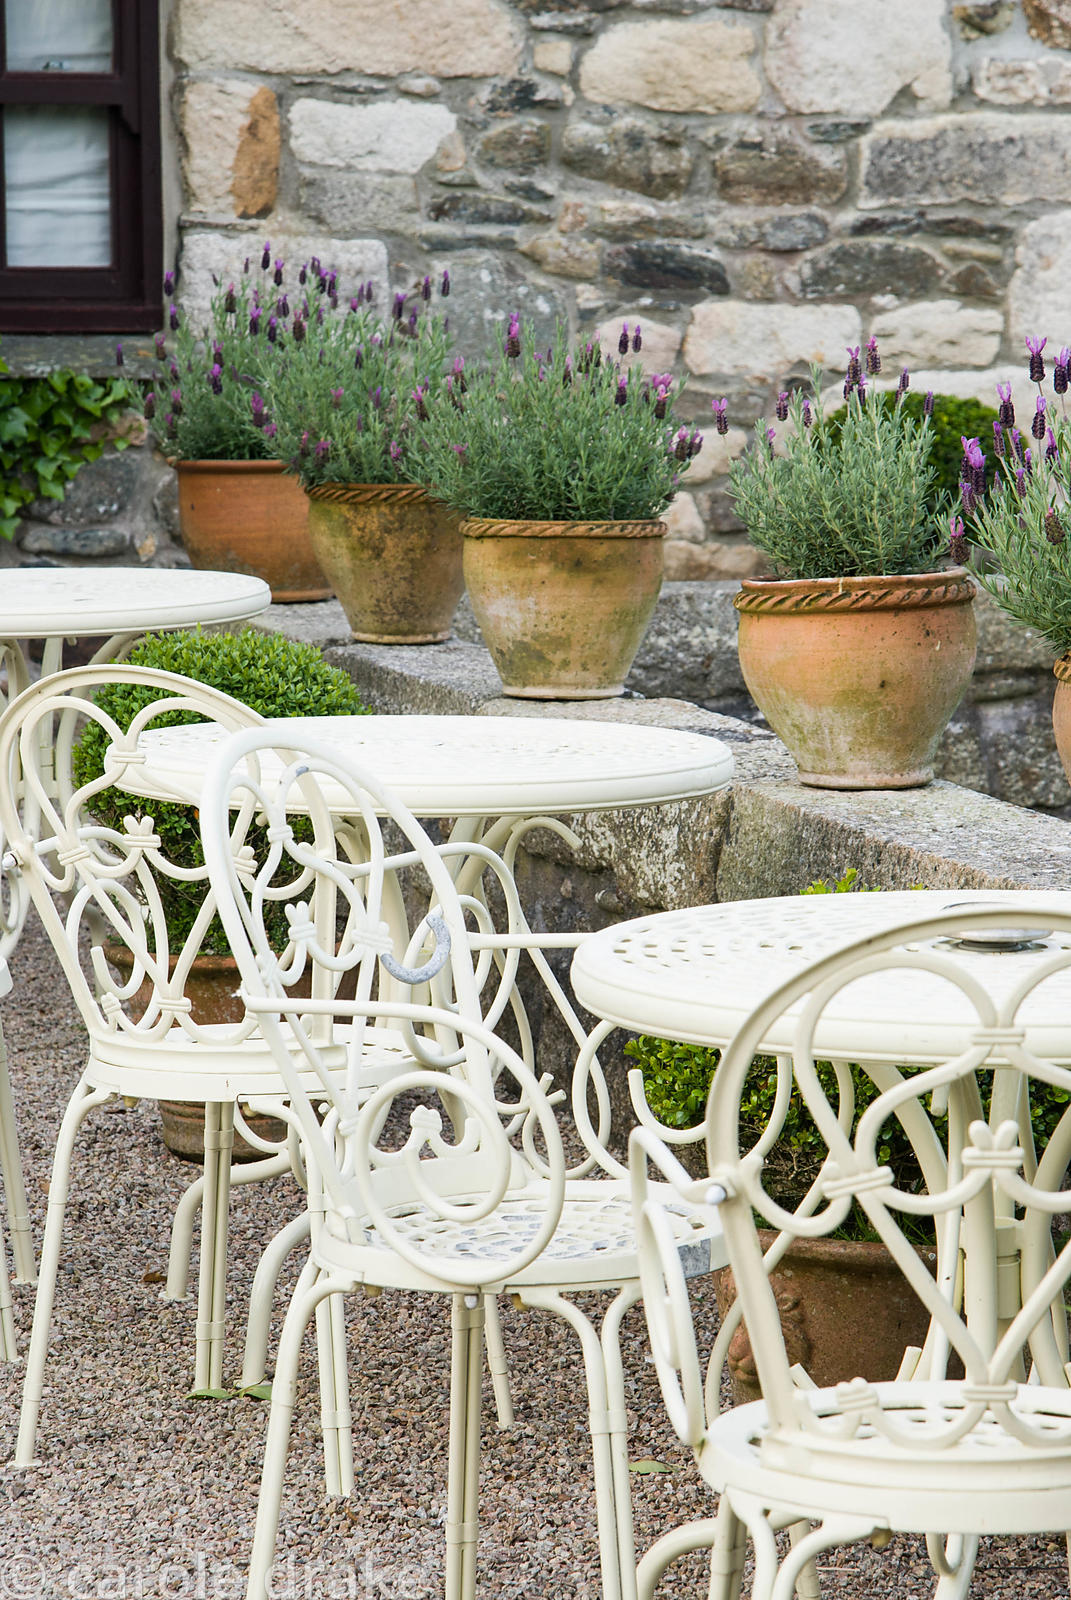 Chairs and tables on the terrace below a line of French lavender. Ednovean Farm, Marazion, Cornwall, UK